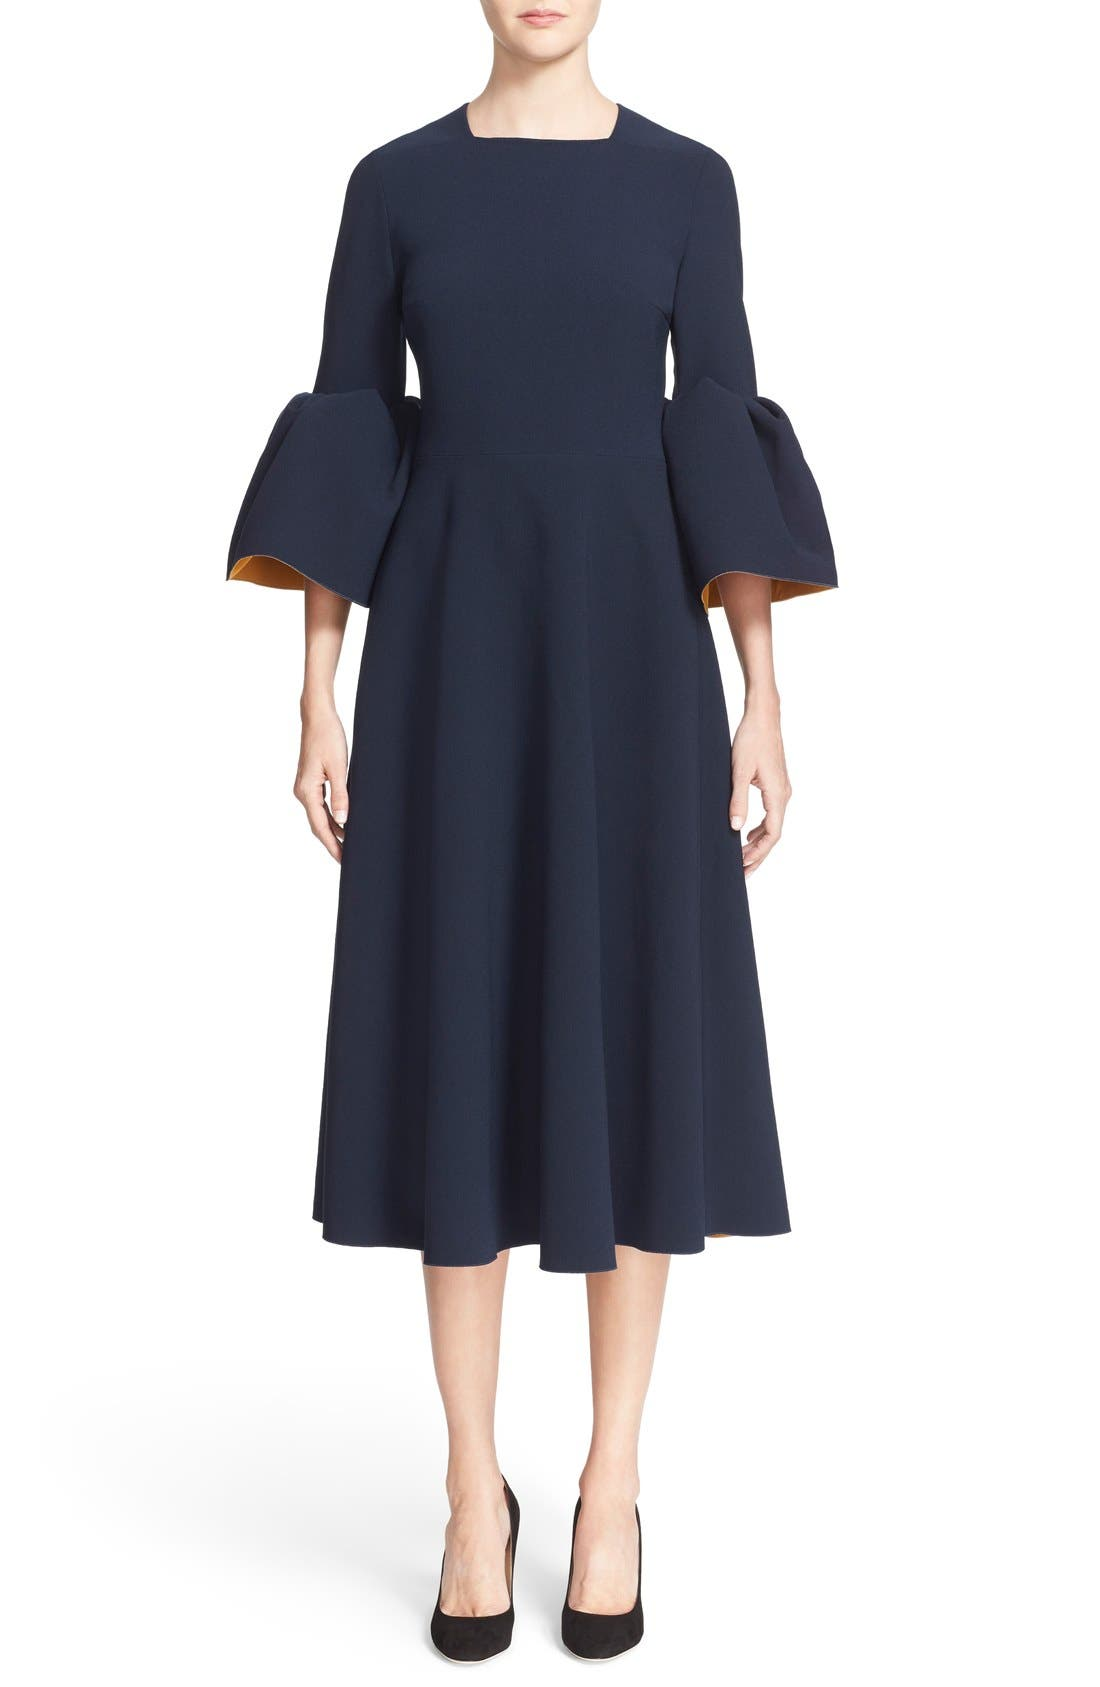 Turlin Flounce Sleeve Midi Dress,                         Main,                         color, Navy/ Ochre